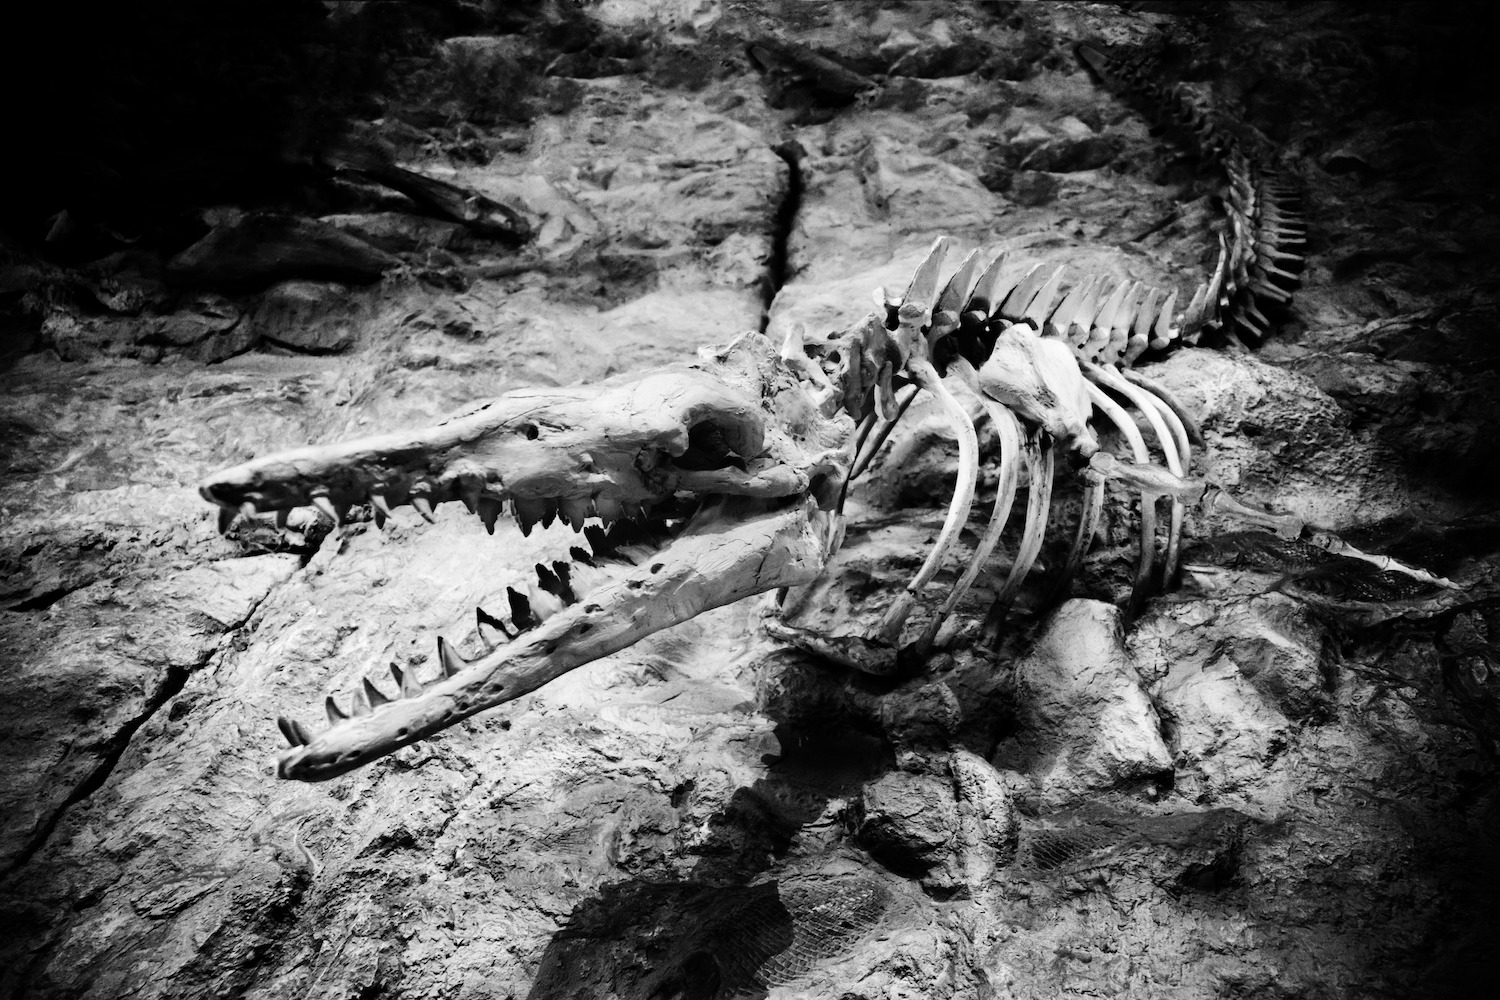 black-and-white-photography-animal-darkness-predator-reptile-1152799-pxhere.com